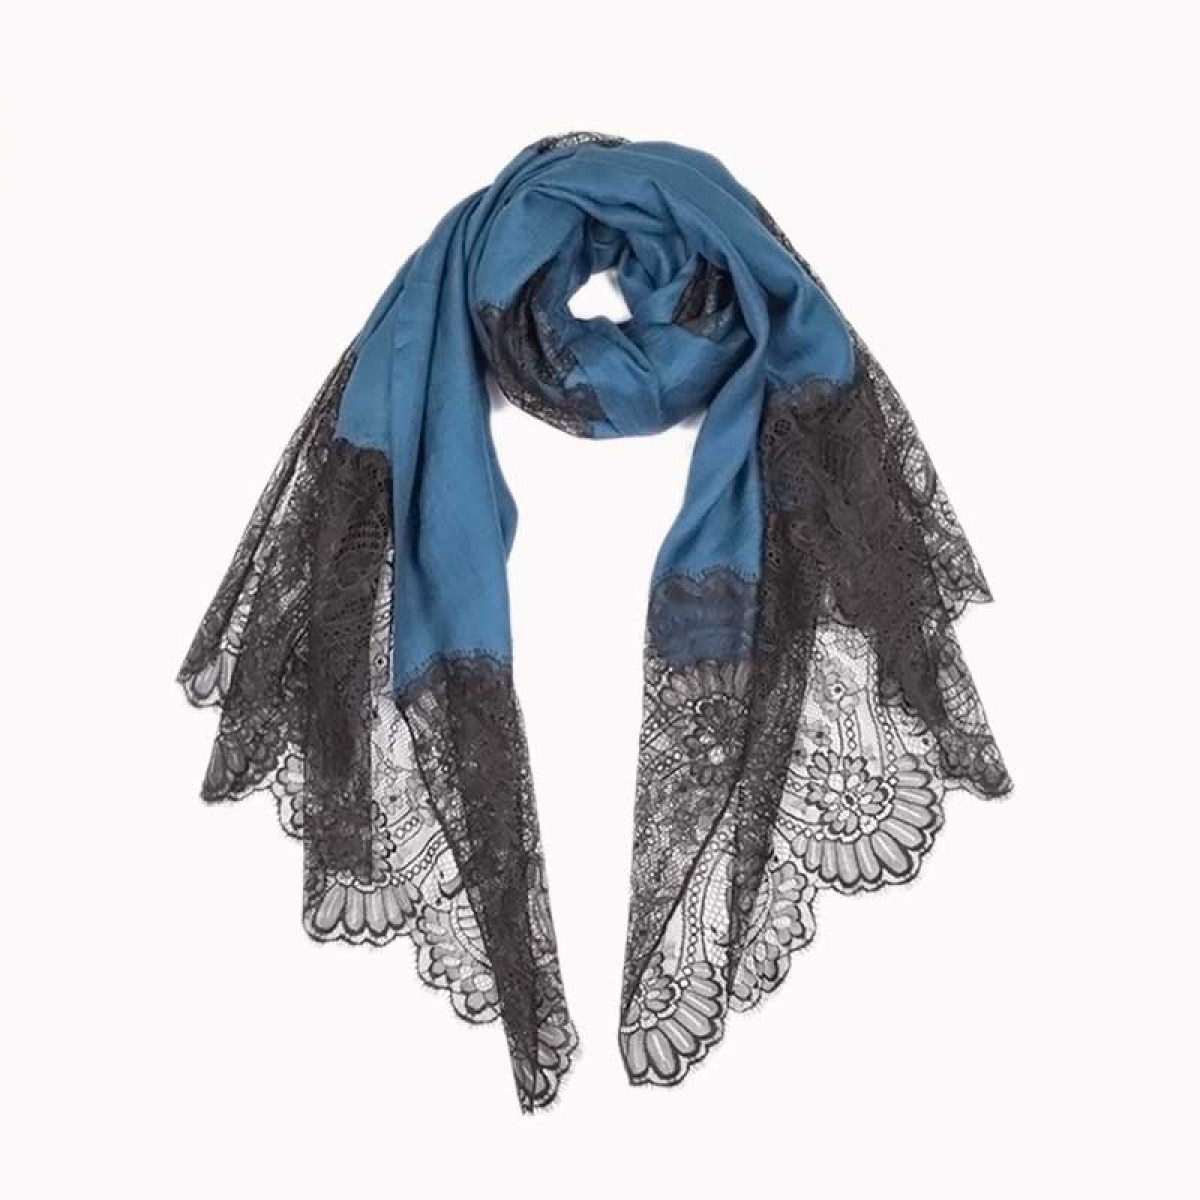 Lace Twill Pashmina Scarf Stripes Across - Midnight Blue